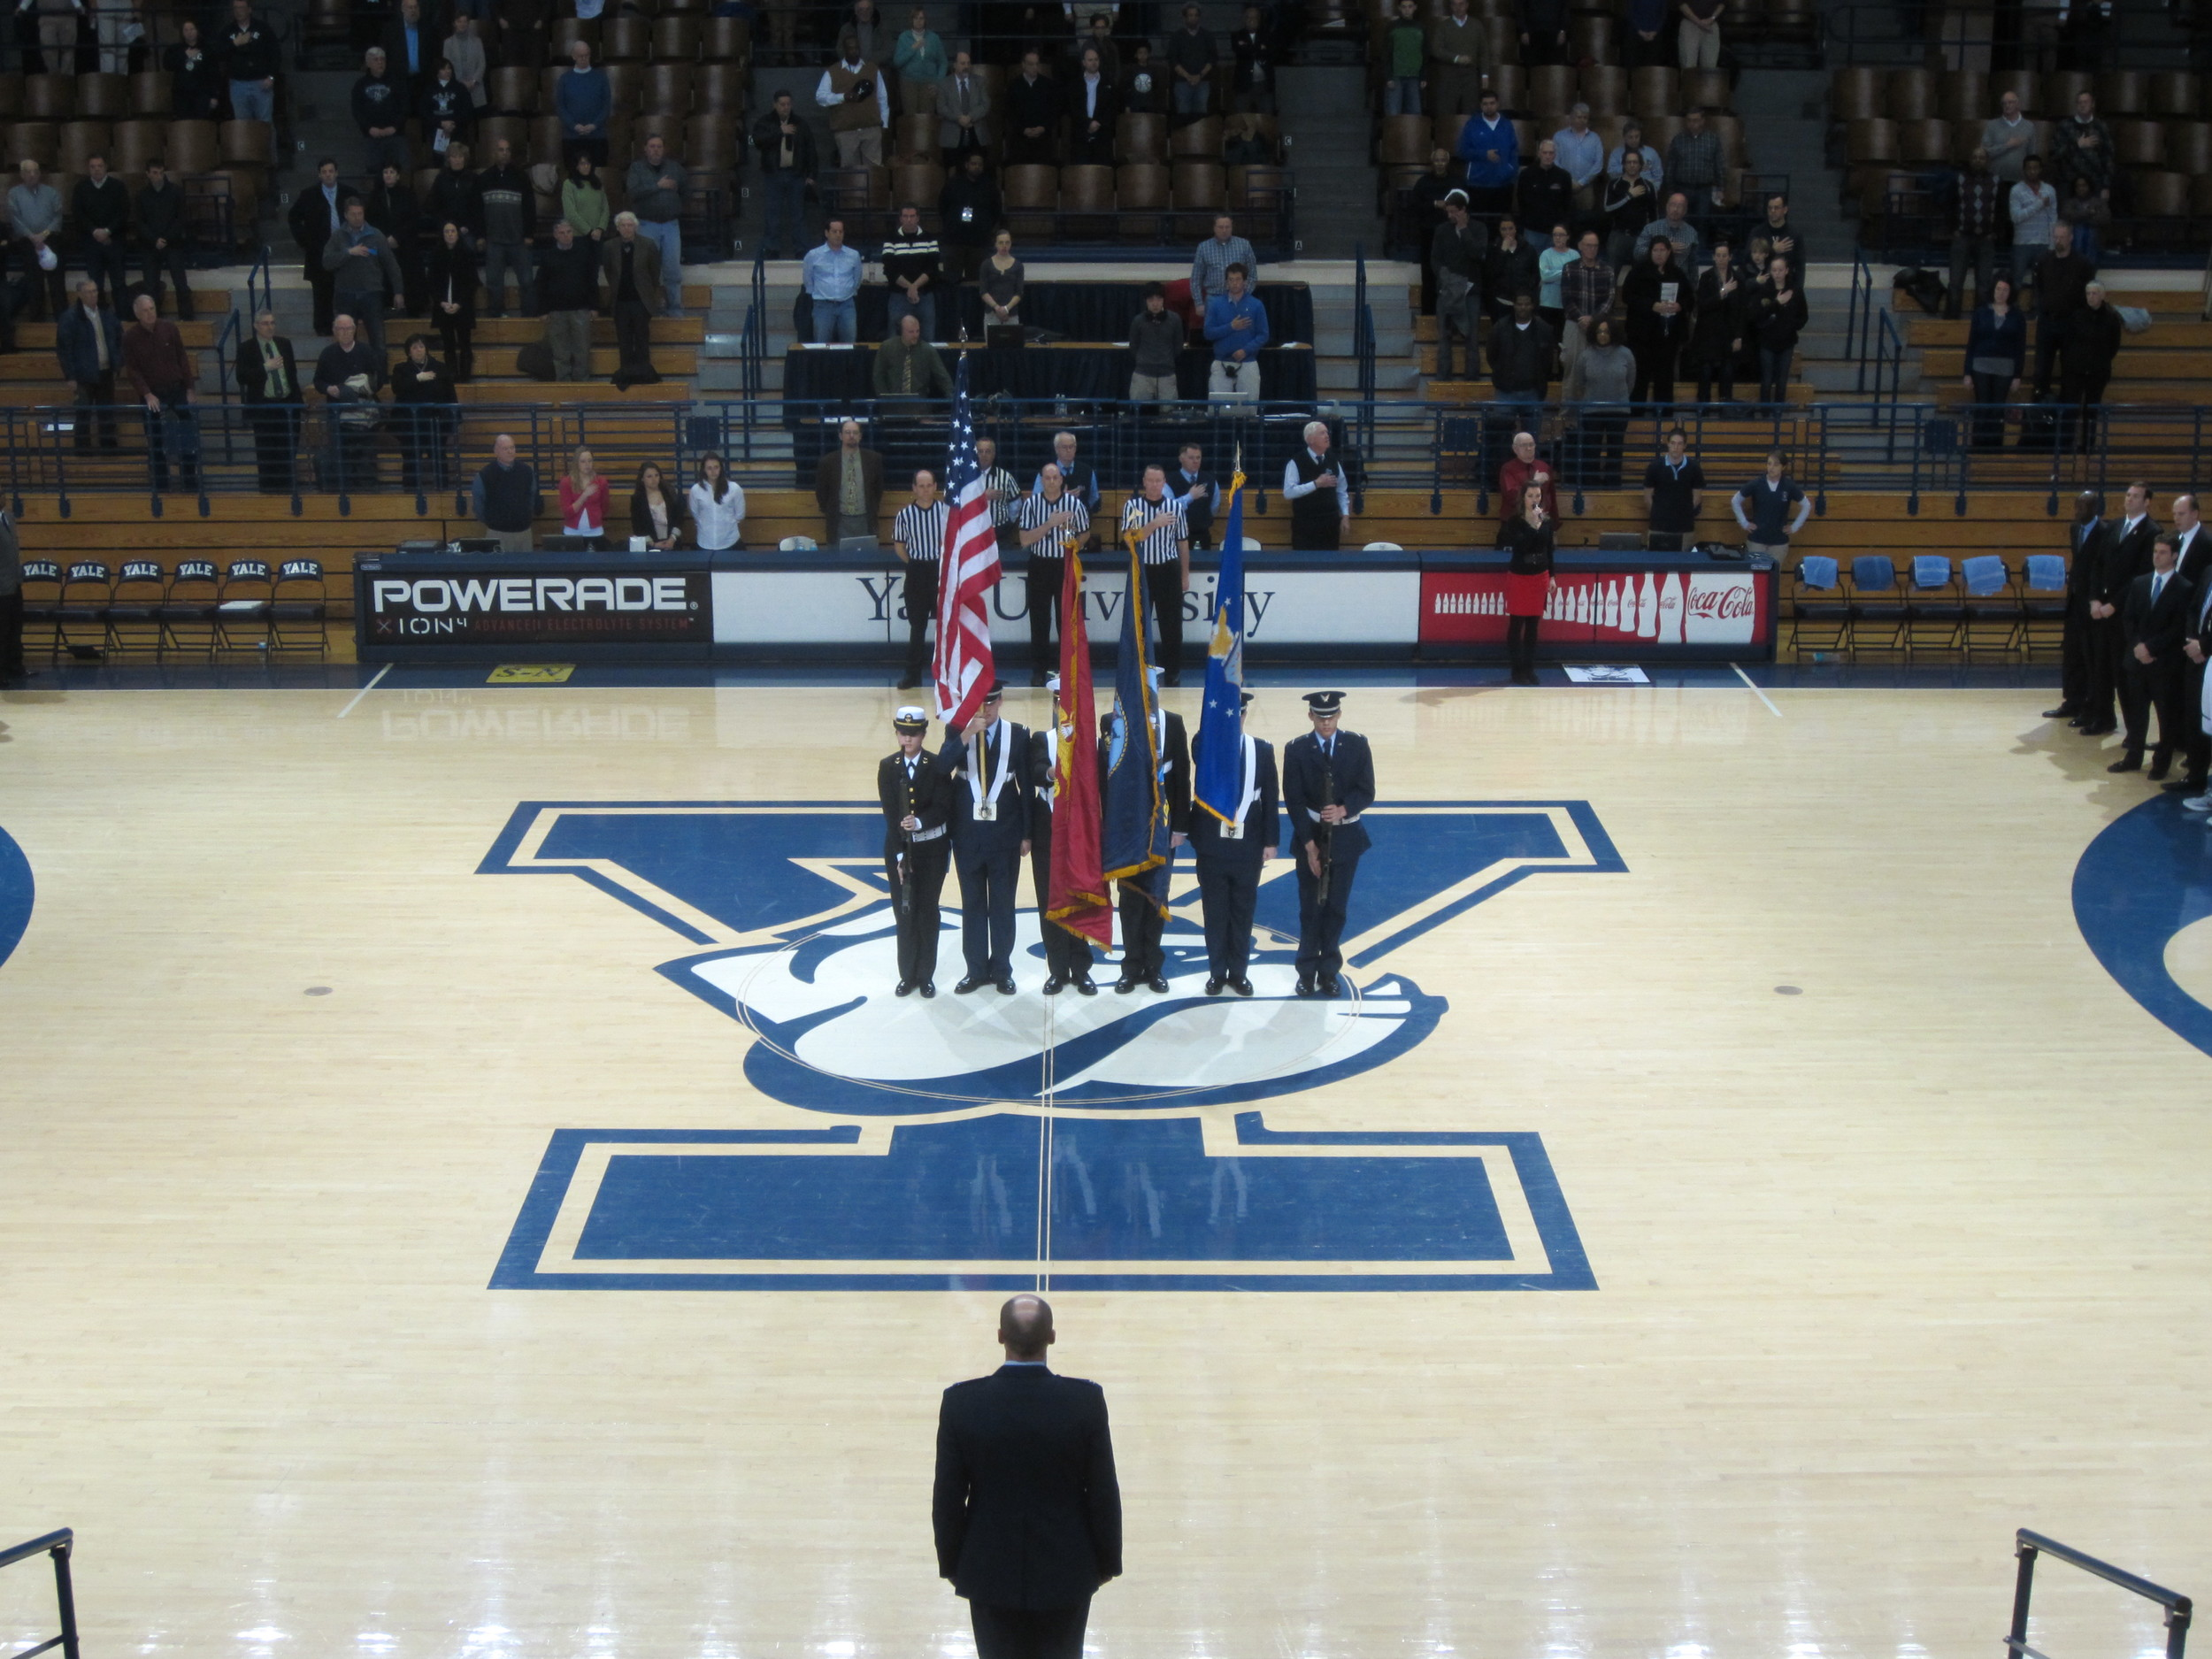 2013.2.22 - Honor Guard at Yale vs. Dartmouth basketball game 002.jpg